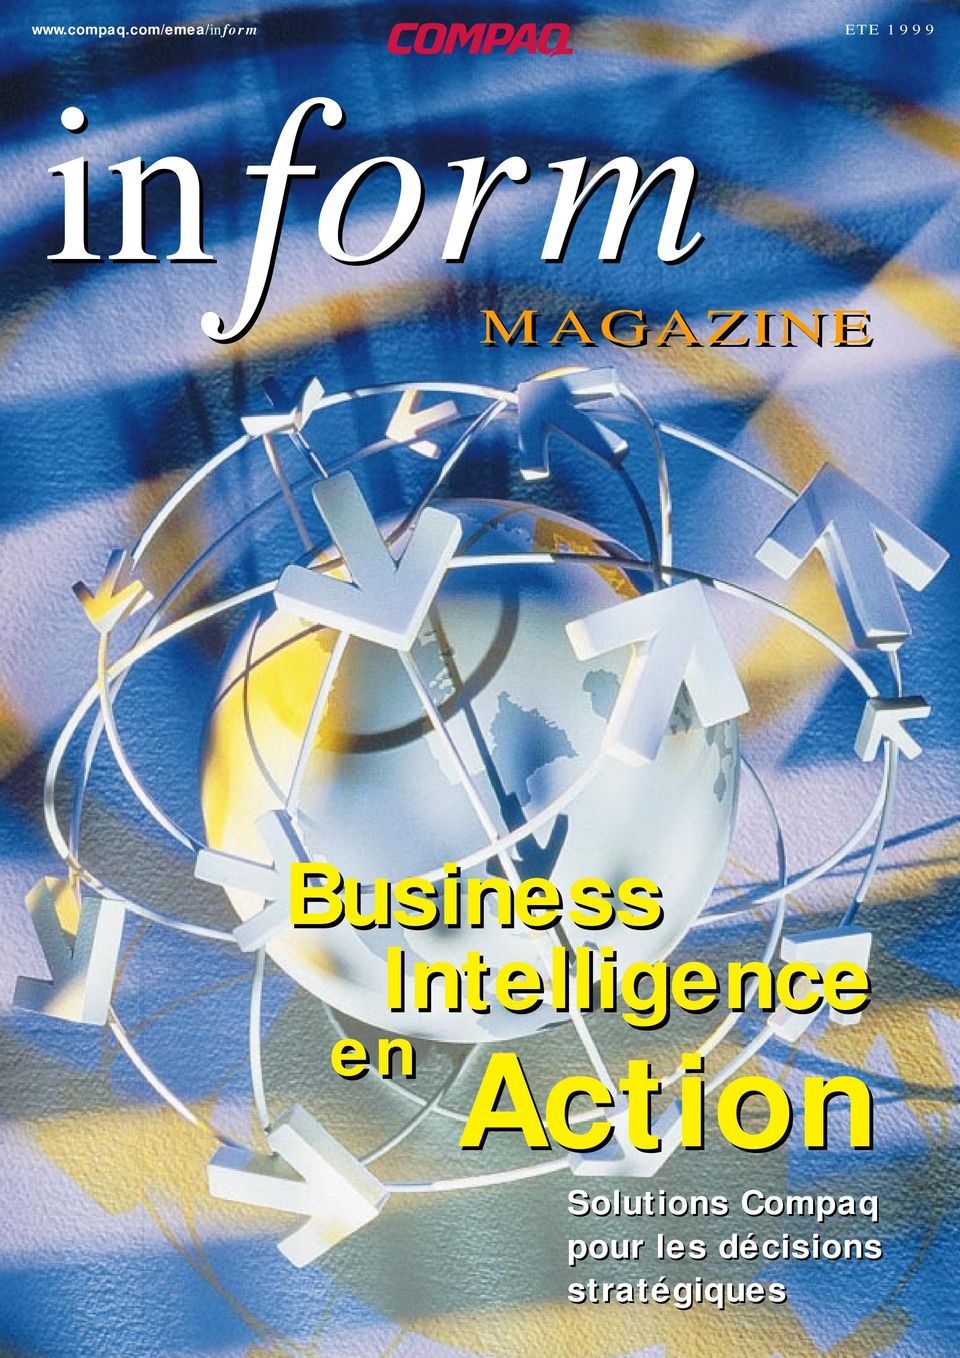 MAGAZINE ETE 1999 Business